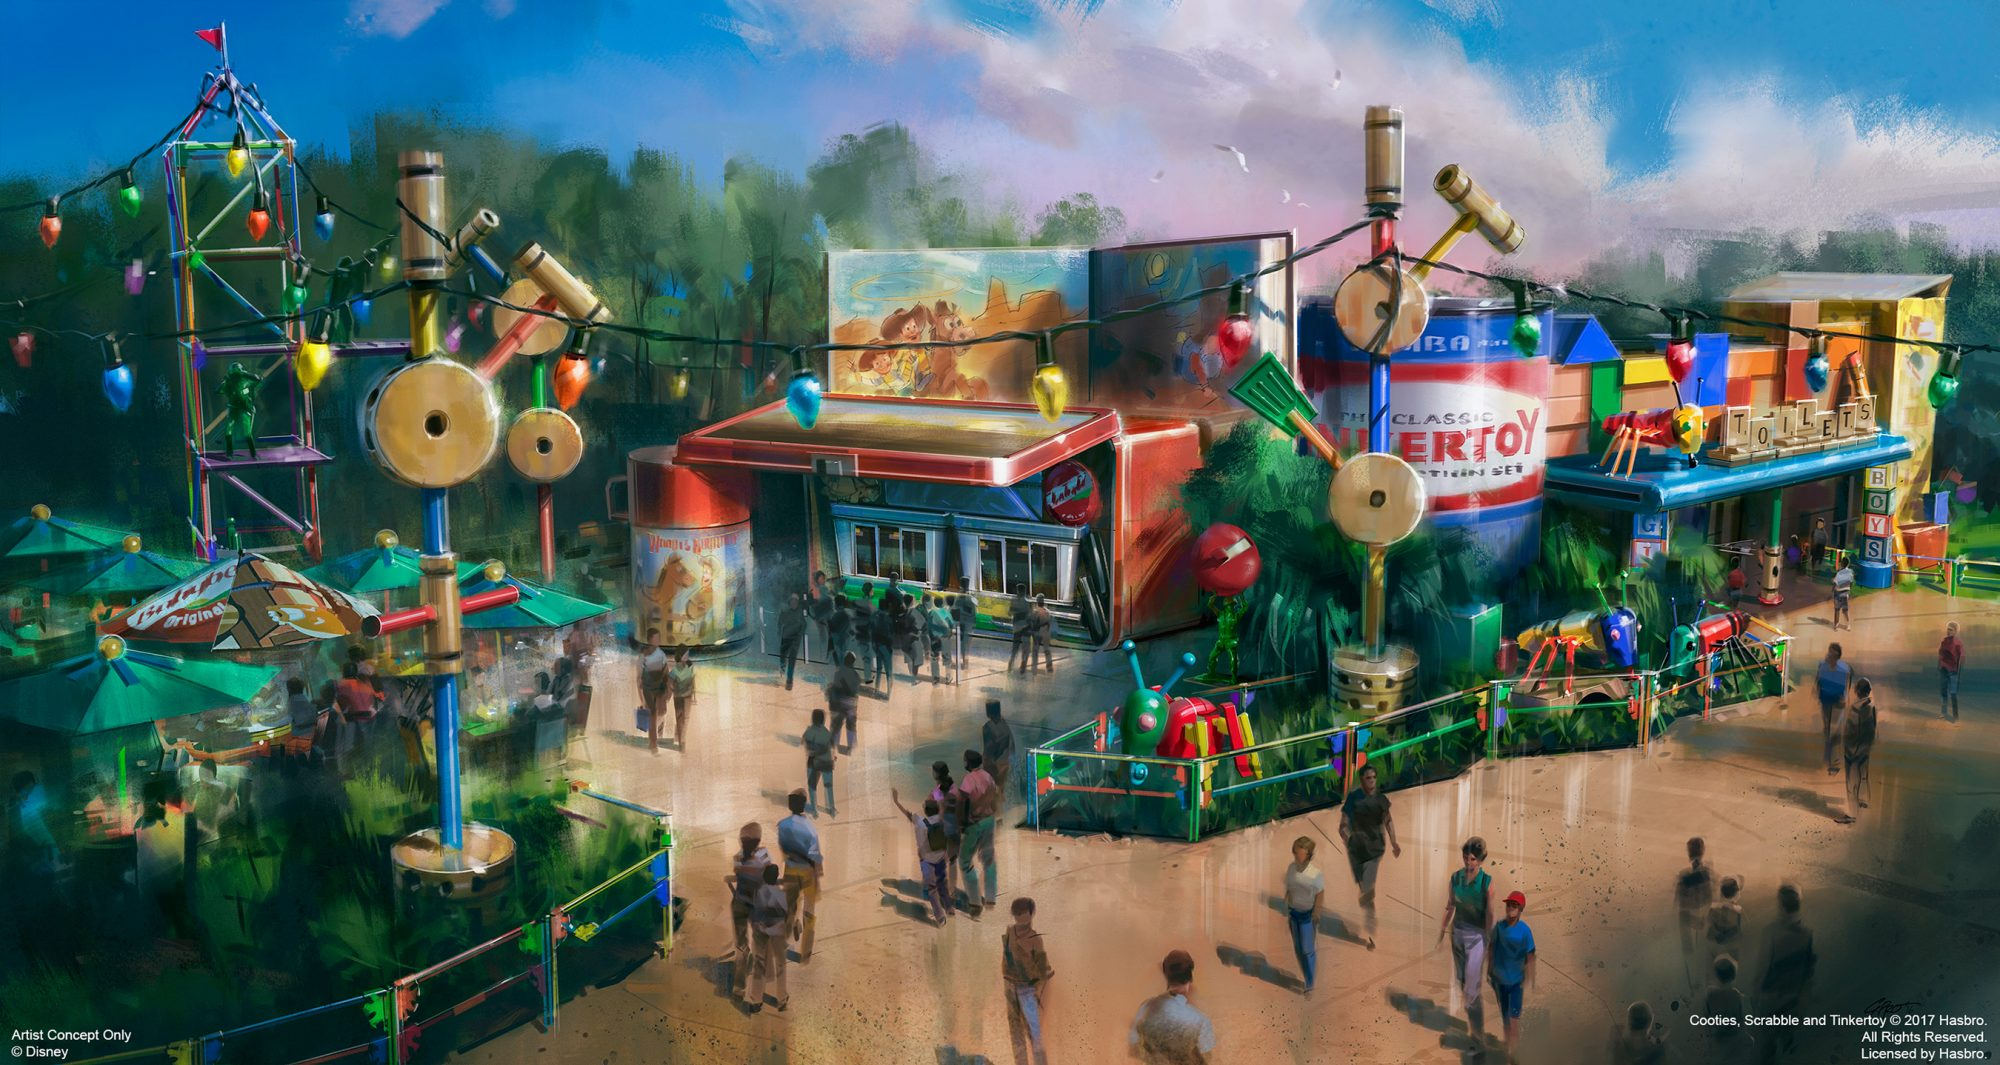 Get a First Look at Walt Disney World's Toy Story Land Restaurant